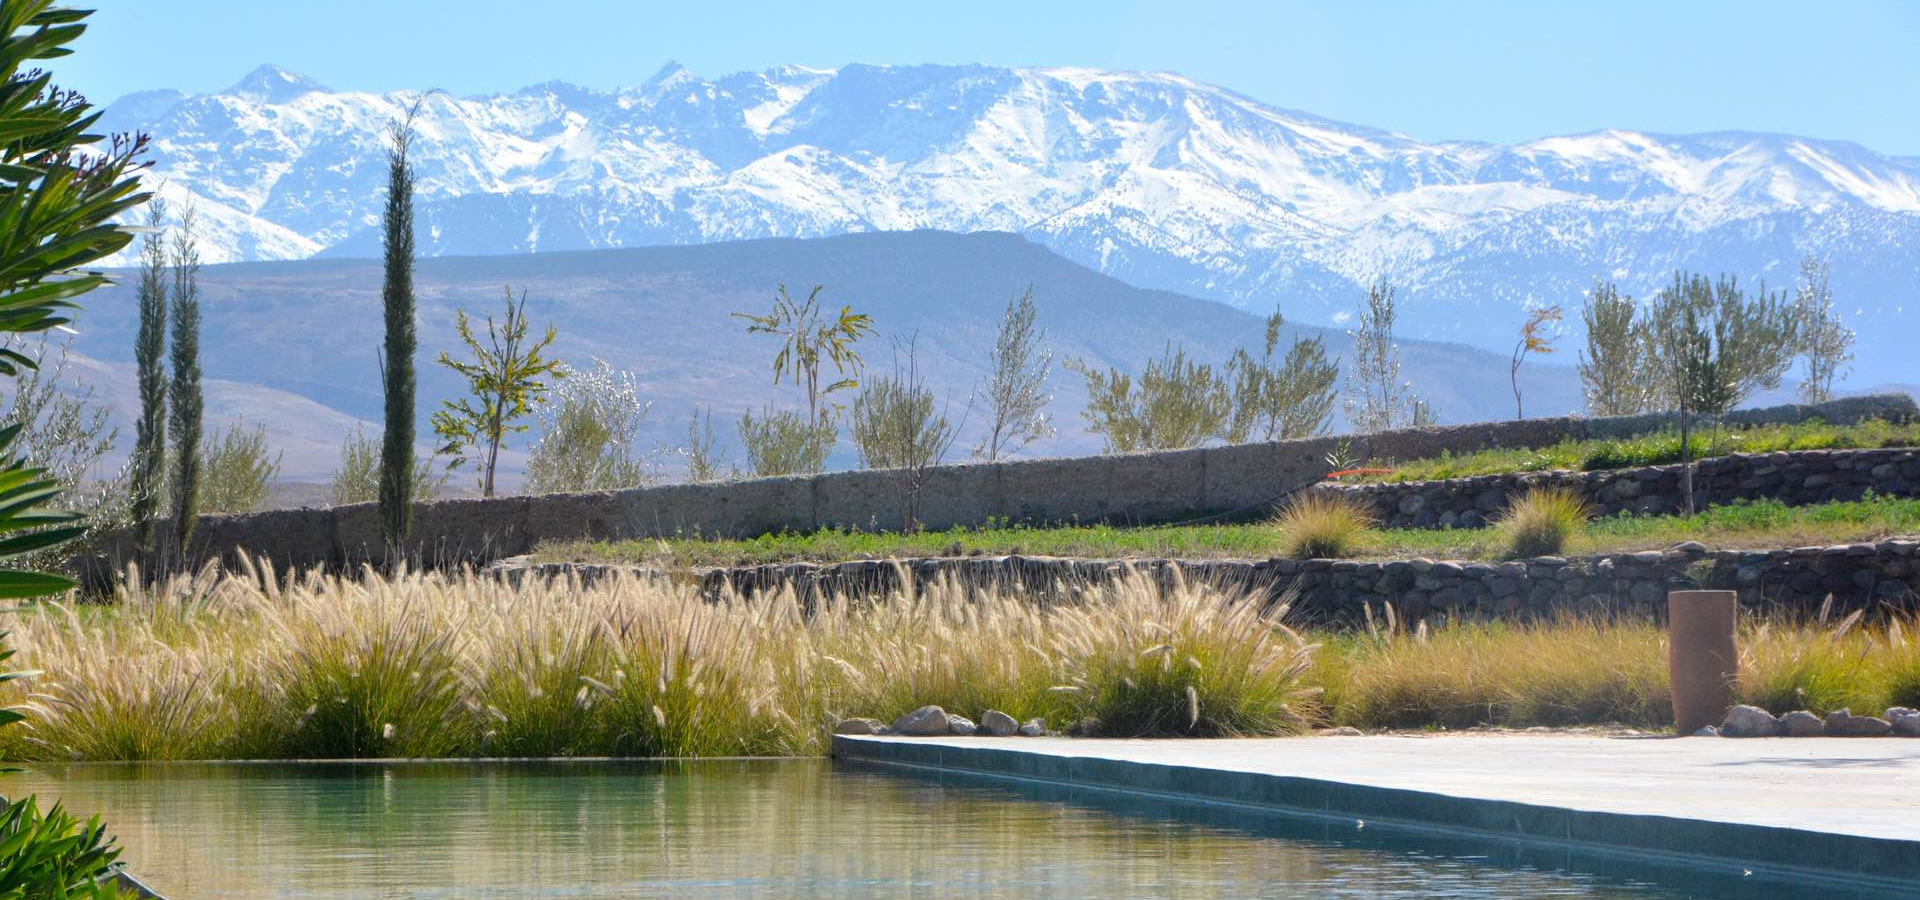 The Morocco countryside brings together nature, well-being and relaxation